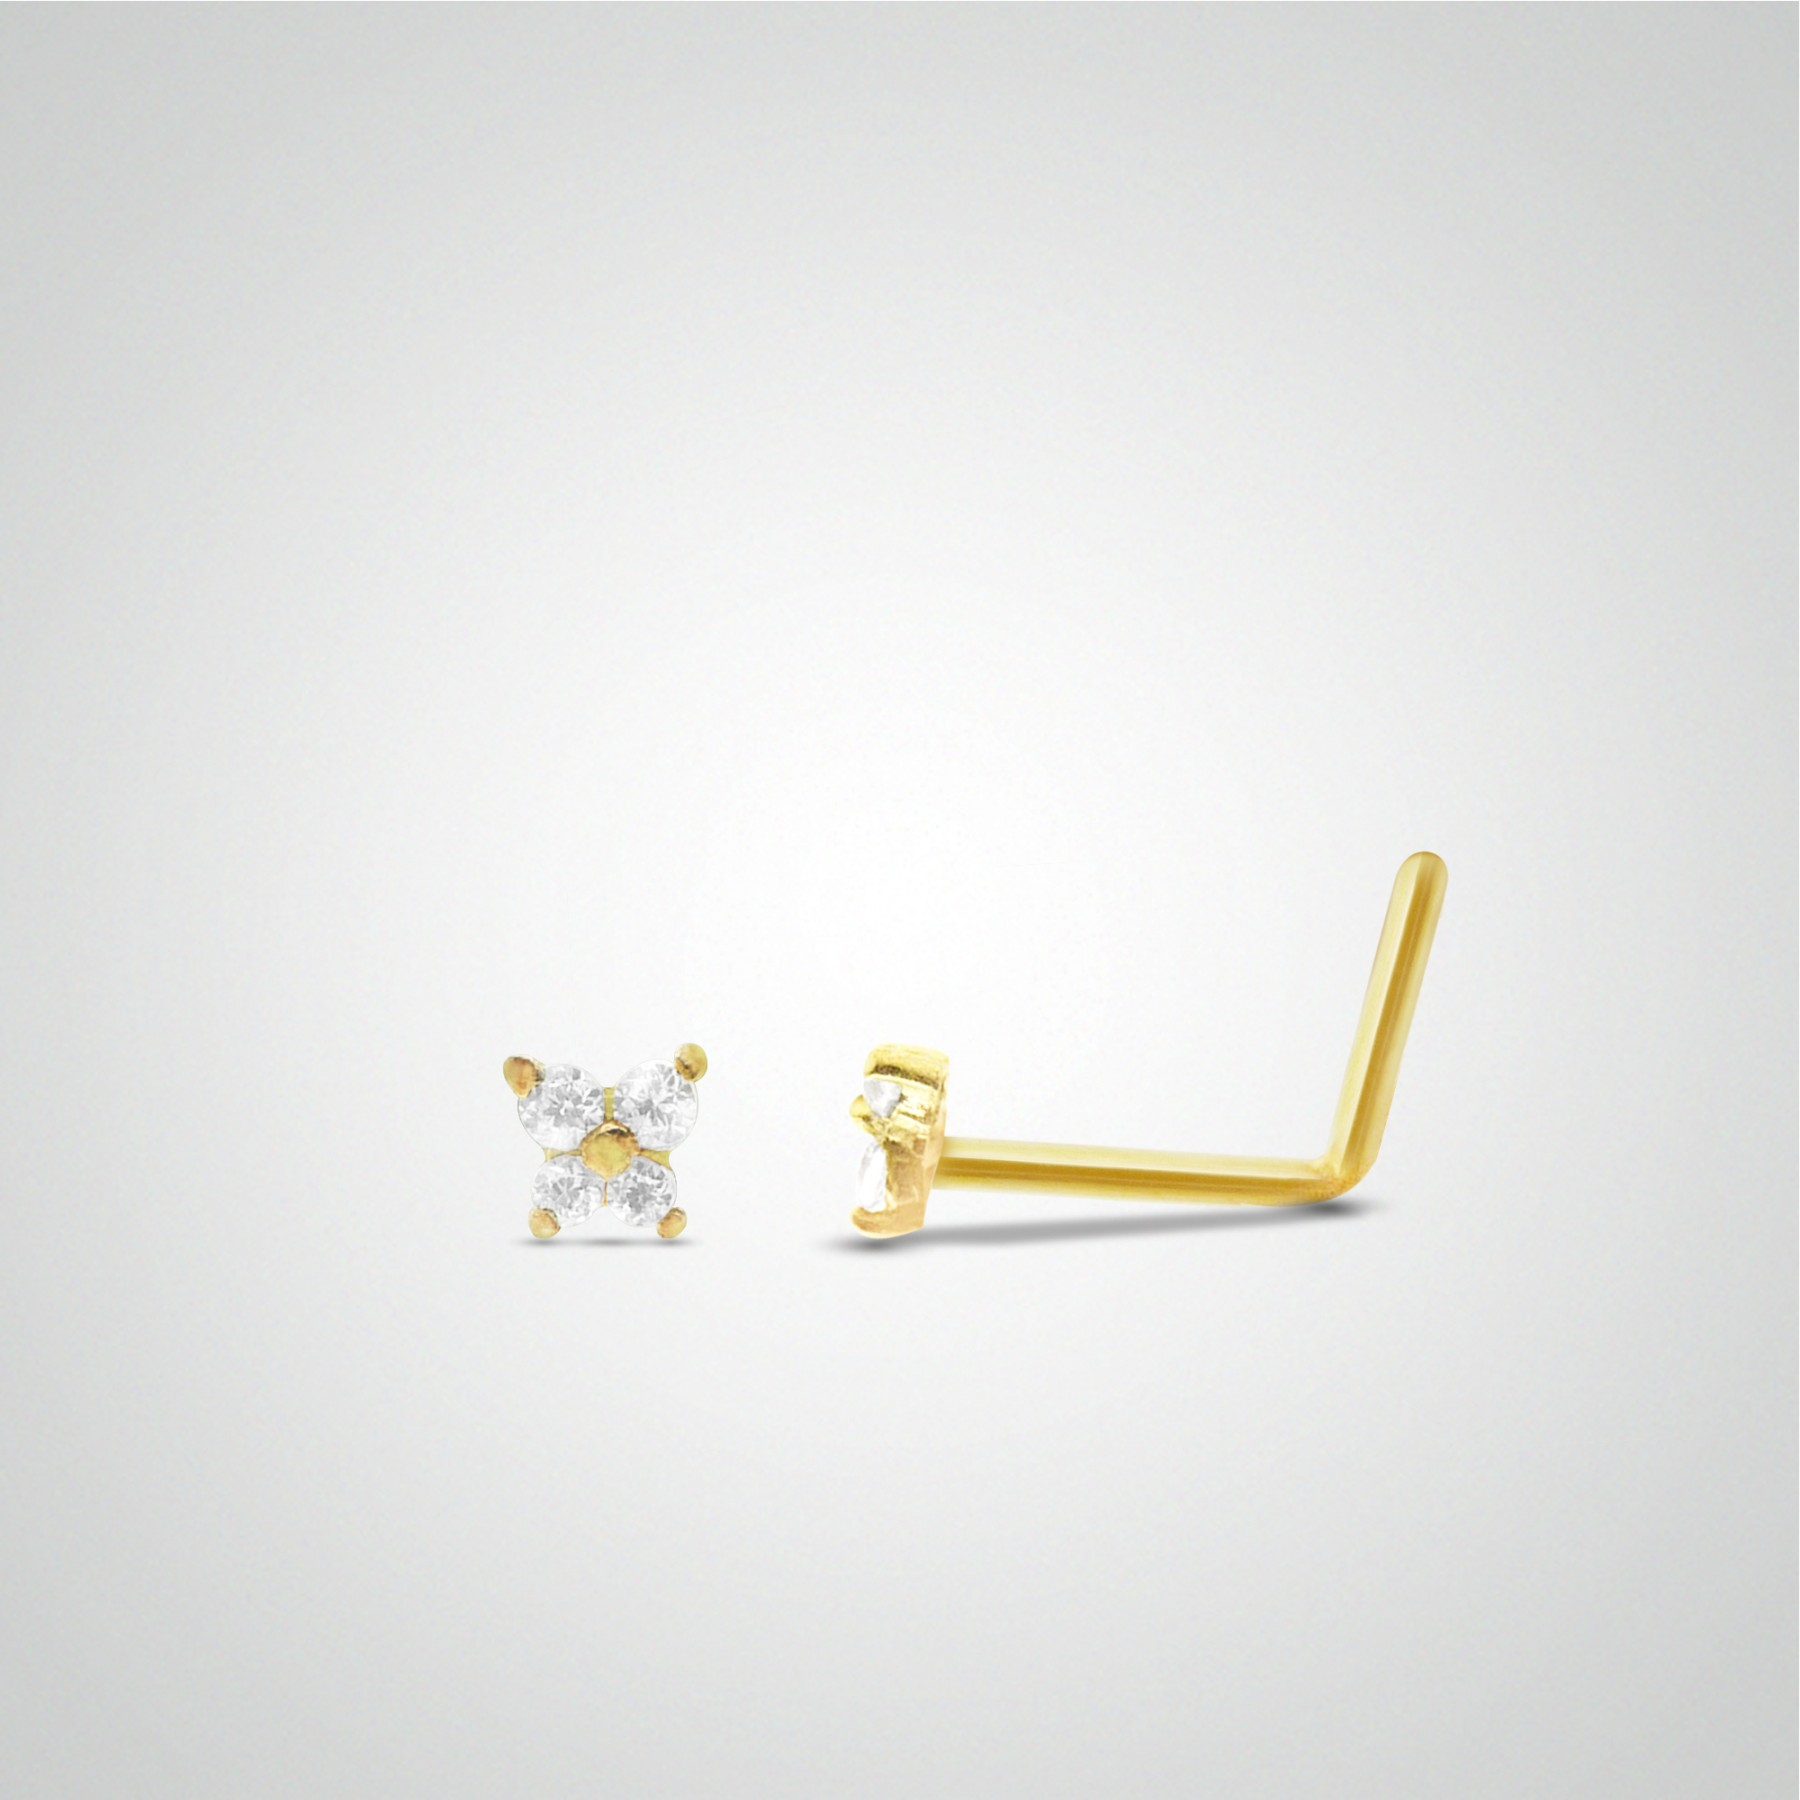 18 Carats Yellow Gold Butterfly And Zirconium Oxide Nose Piercing